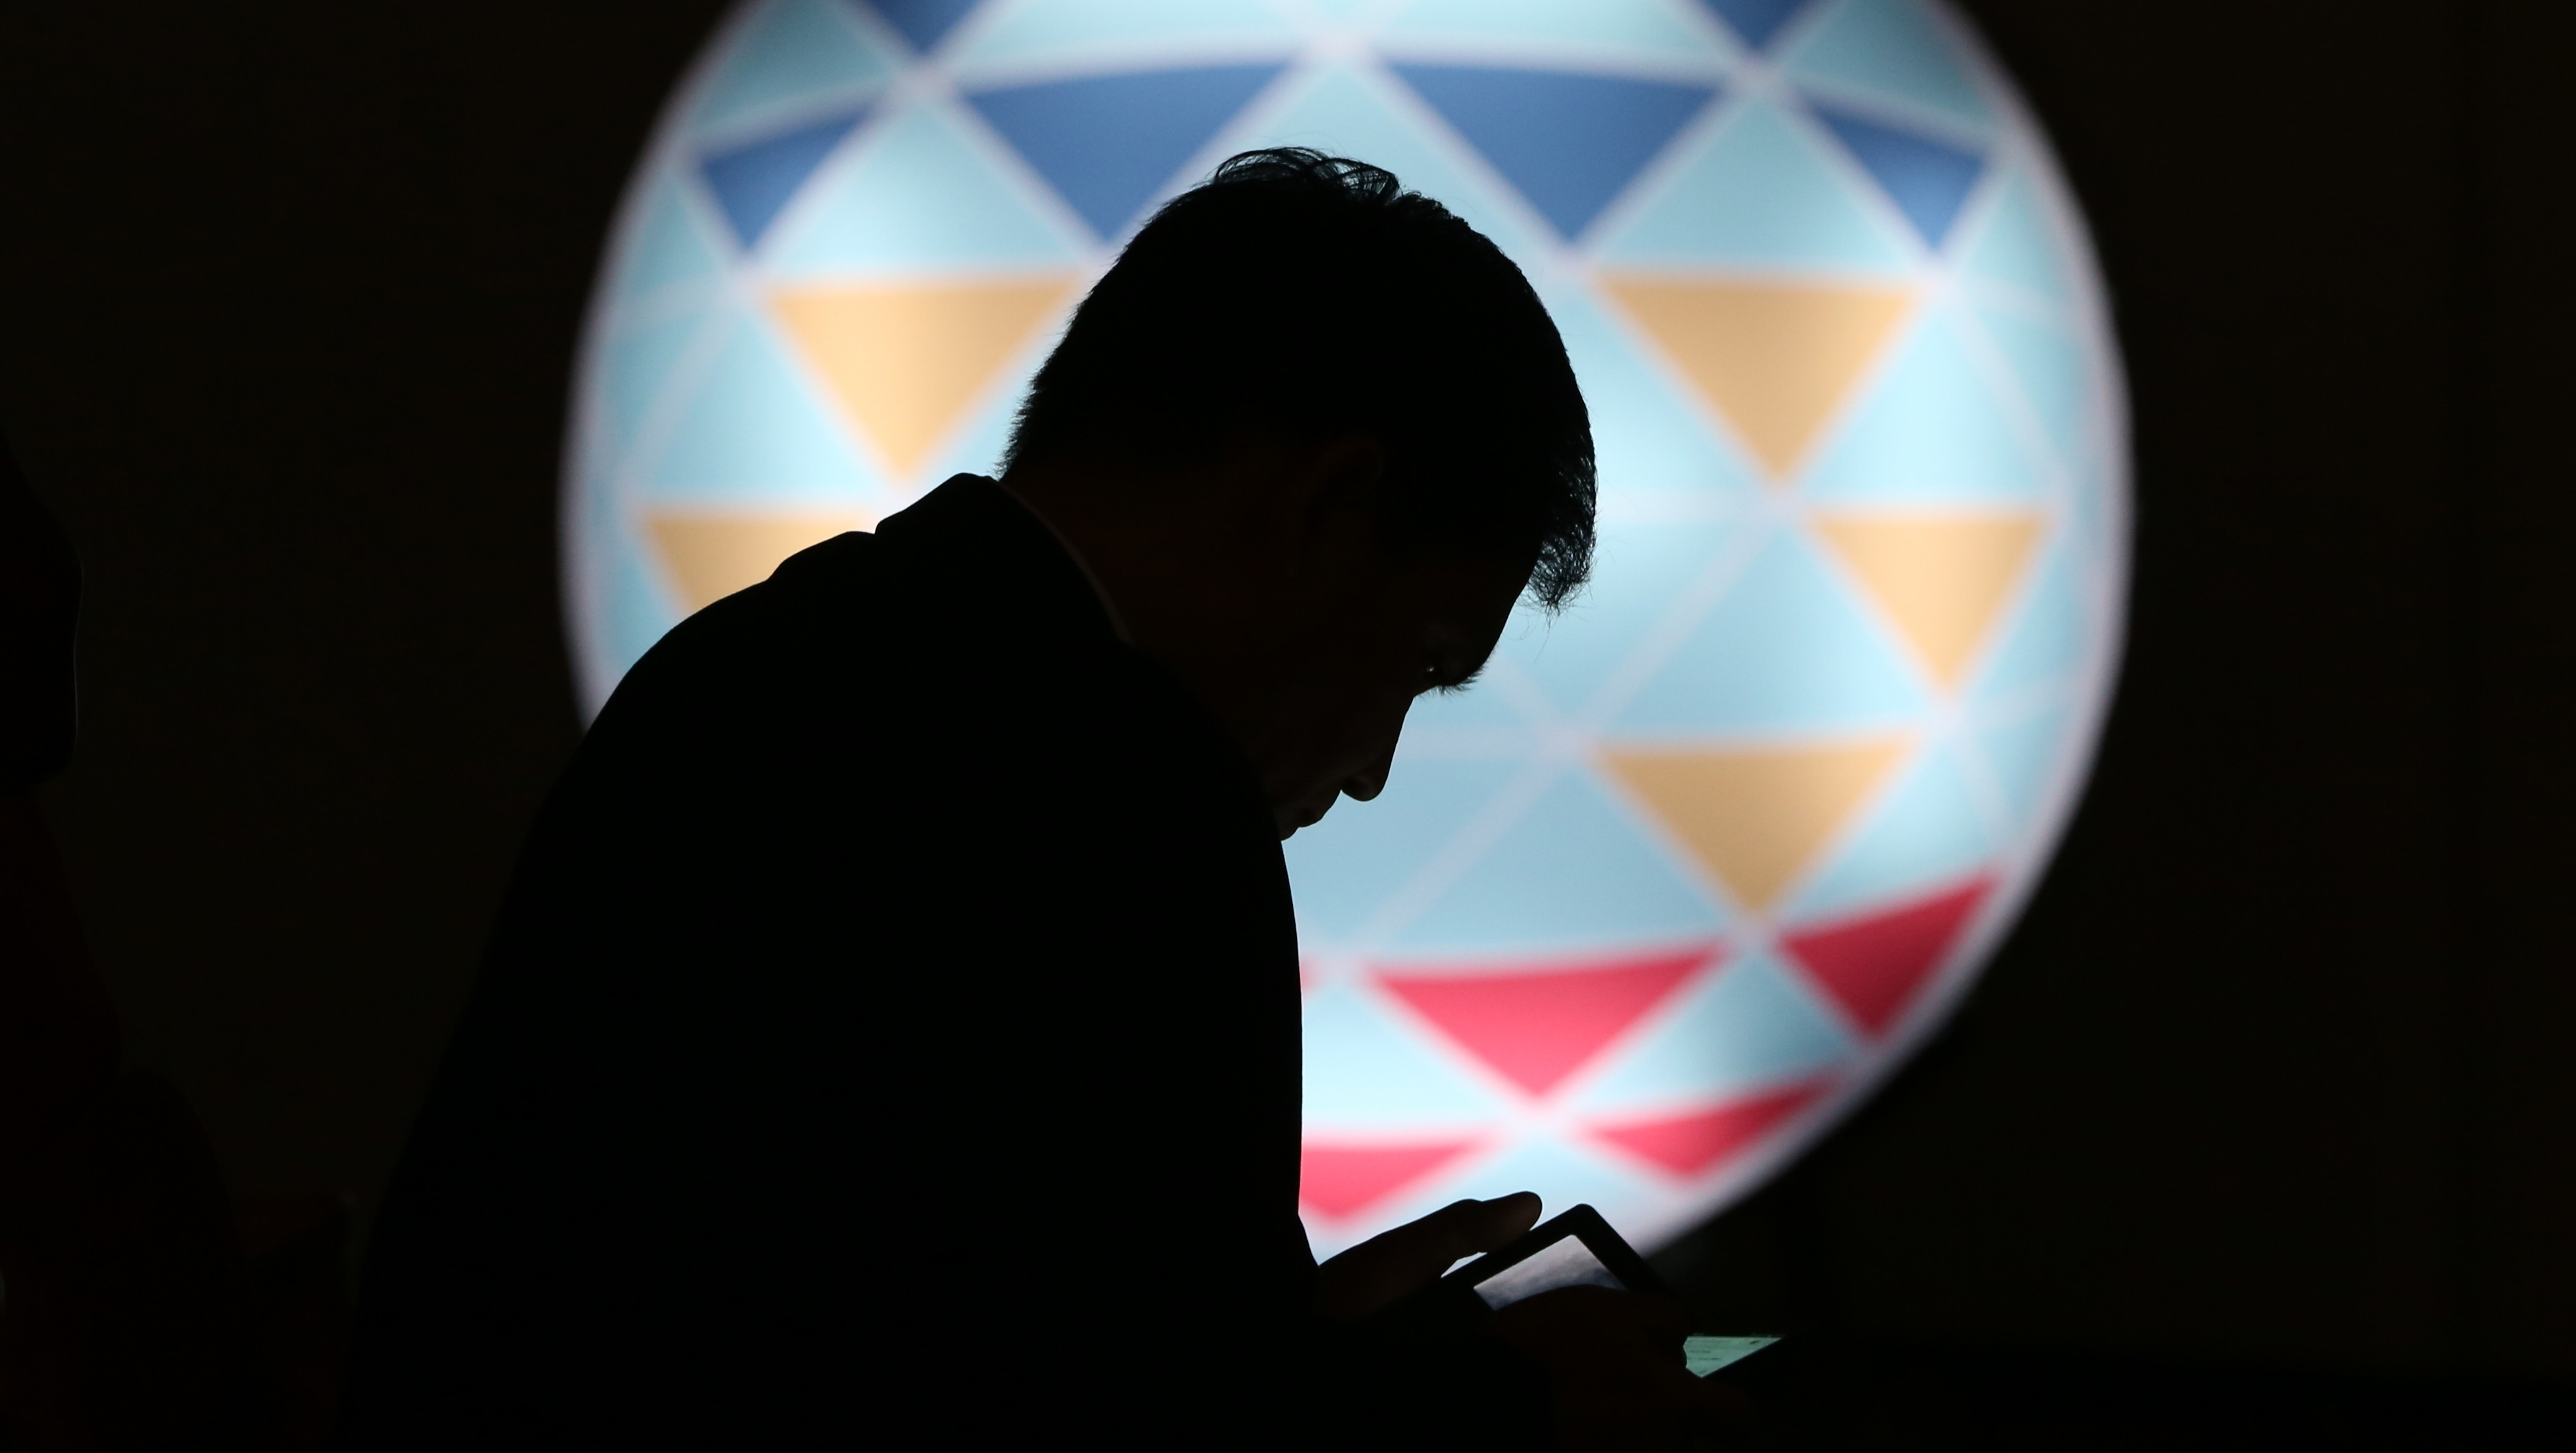 FILE - In this Sunday, Nov. 15, 2015, file photo, a Filipino checks his smartphone in front of the logo of APEC 2015 in Manila, Philippines. (AP Photo/Aaron Favila, File)